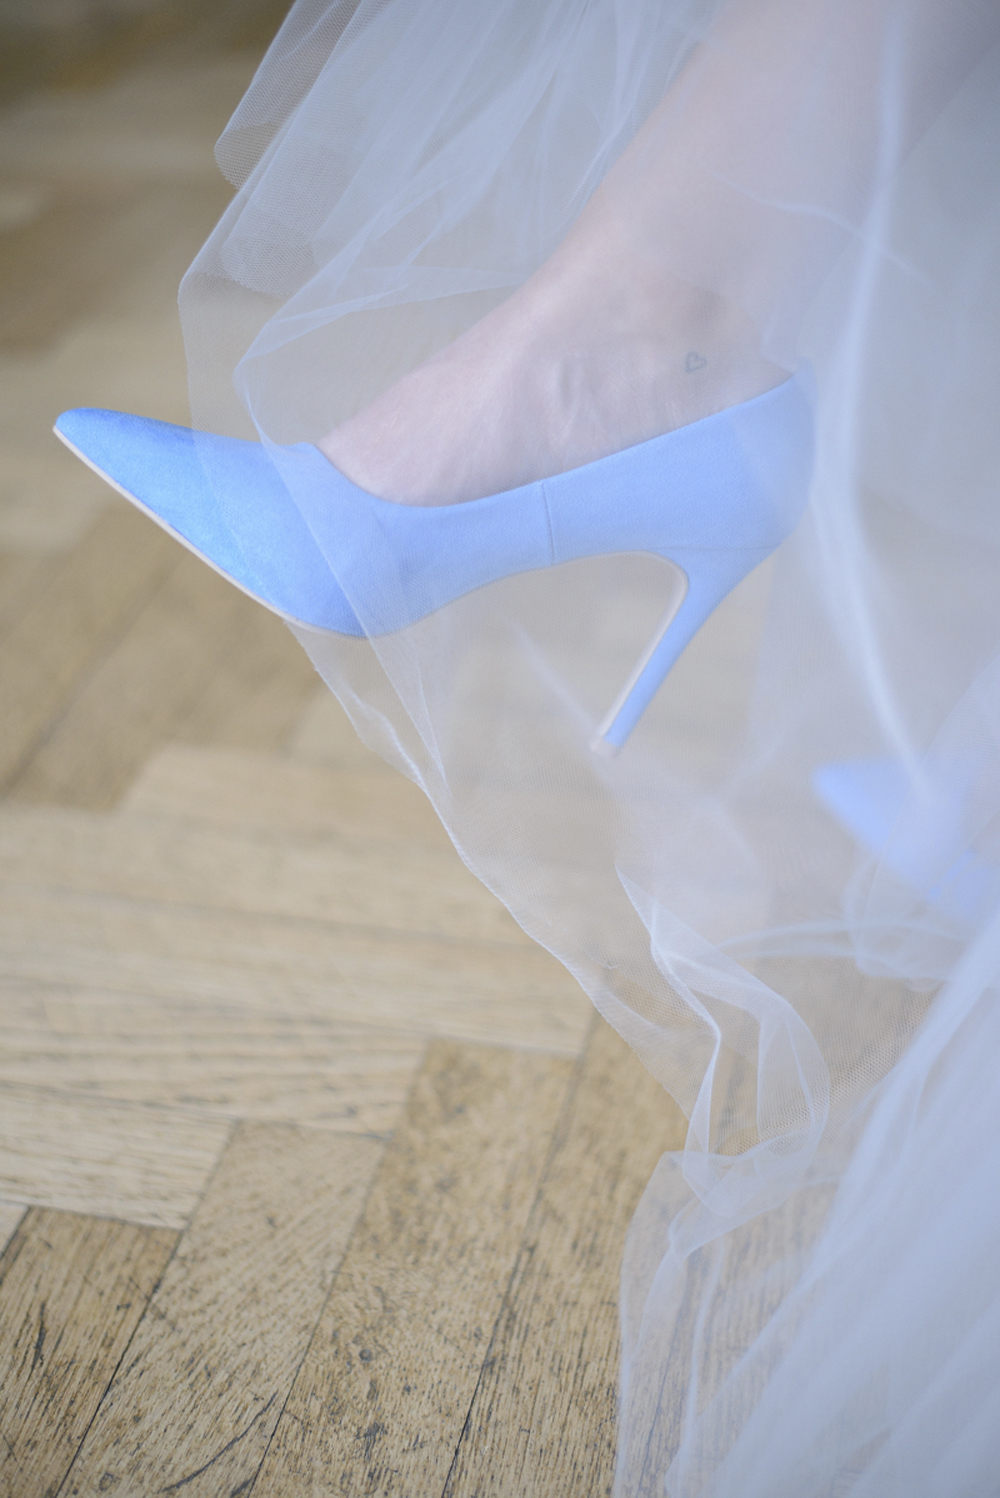 Blue suede shoes wedding inspiration at Schloss Laudon Vienna Austria by Barbara Wenz Photography